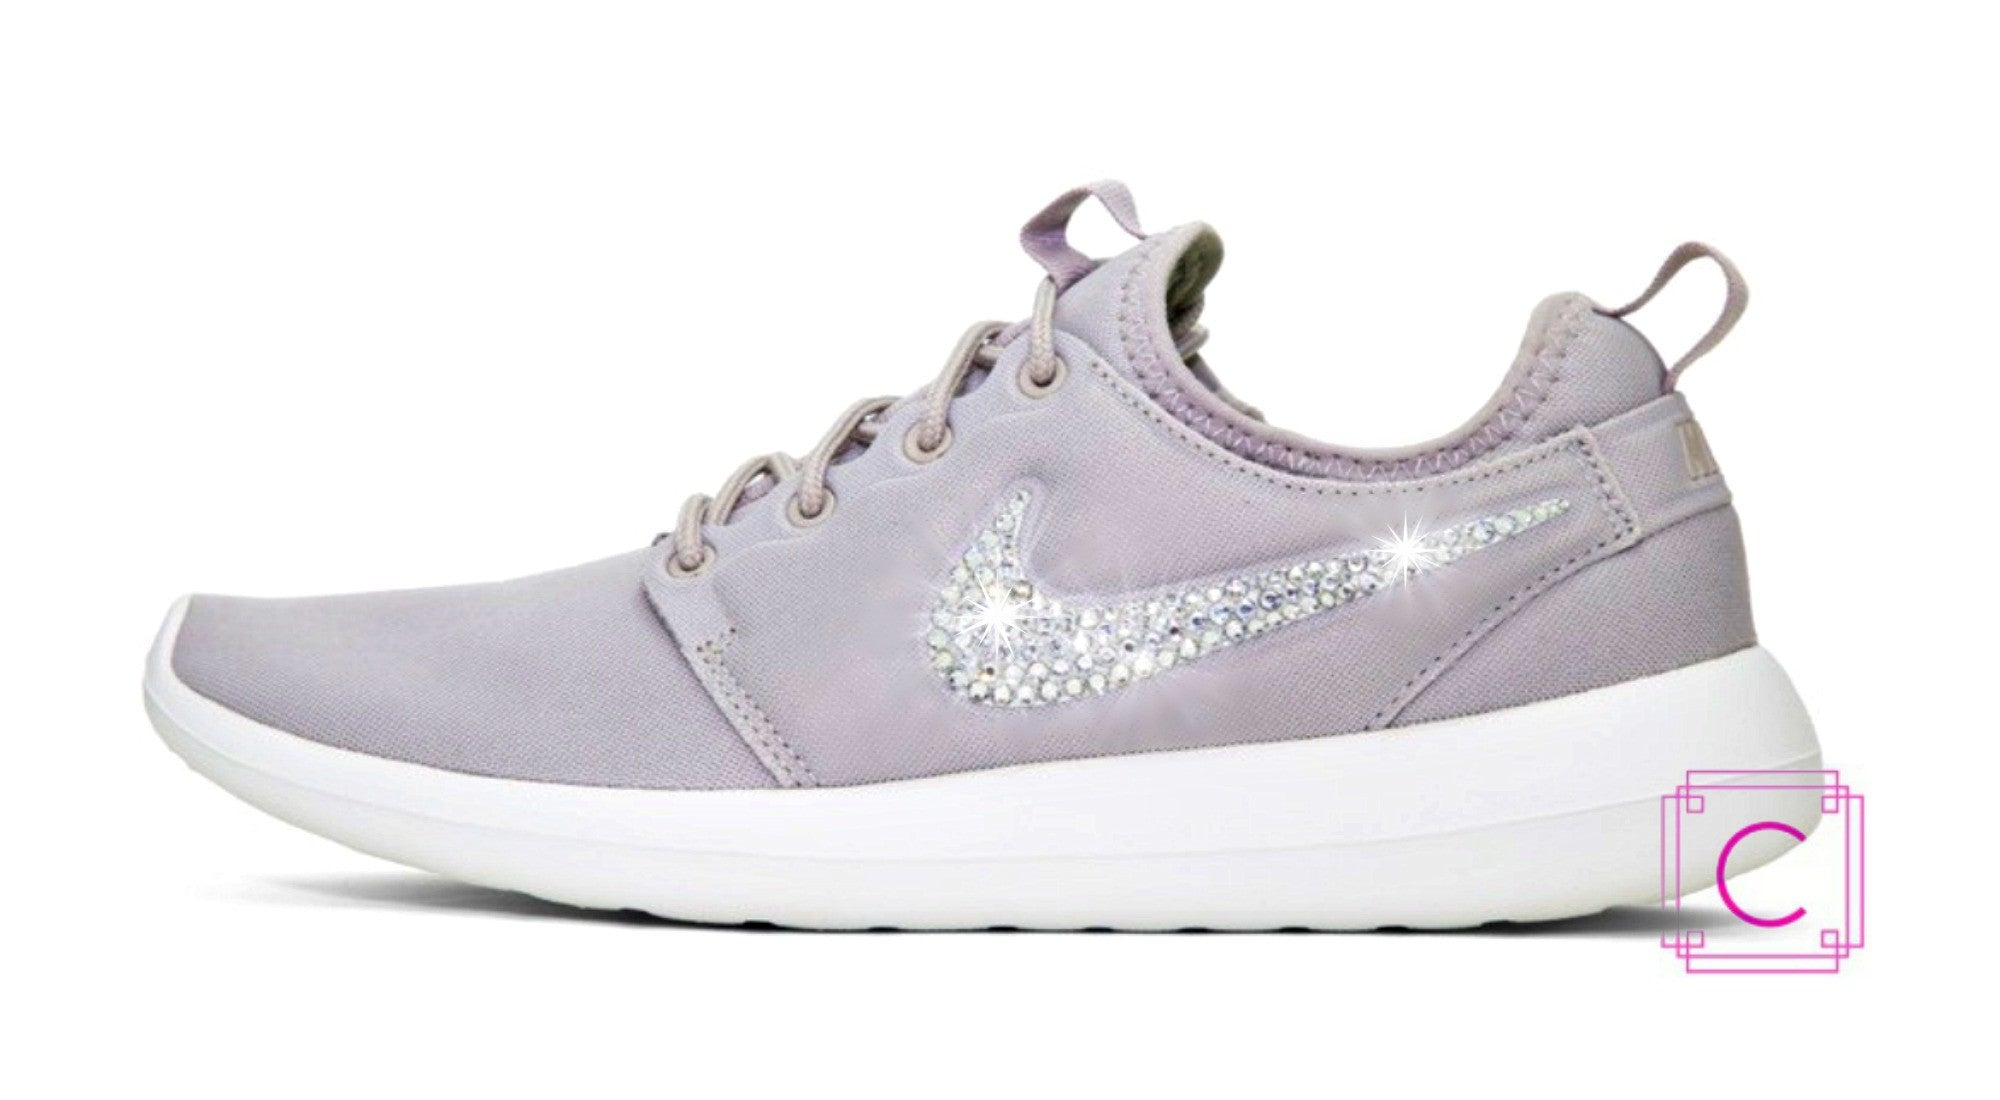 Women s Nike Roshe Two Premium in Wolf Grey w Swarovski Crystals details 419e4b505859